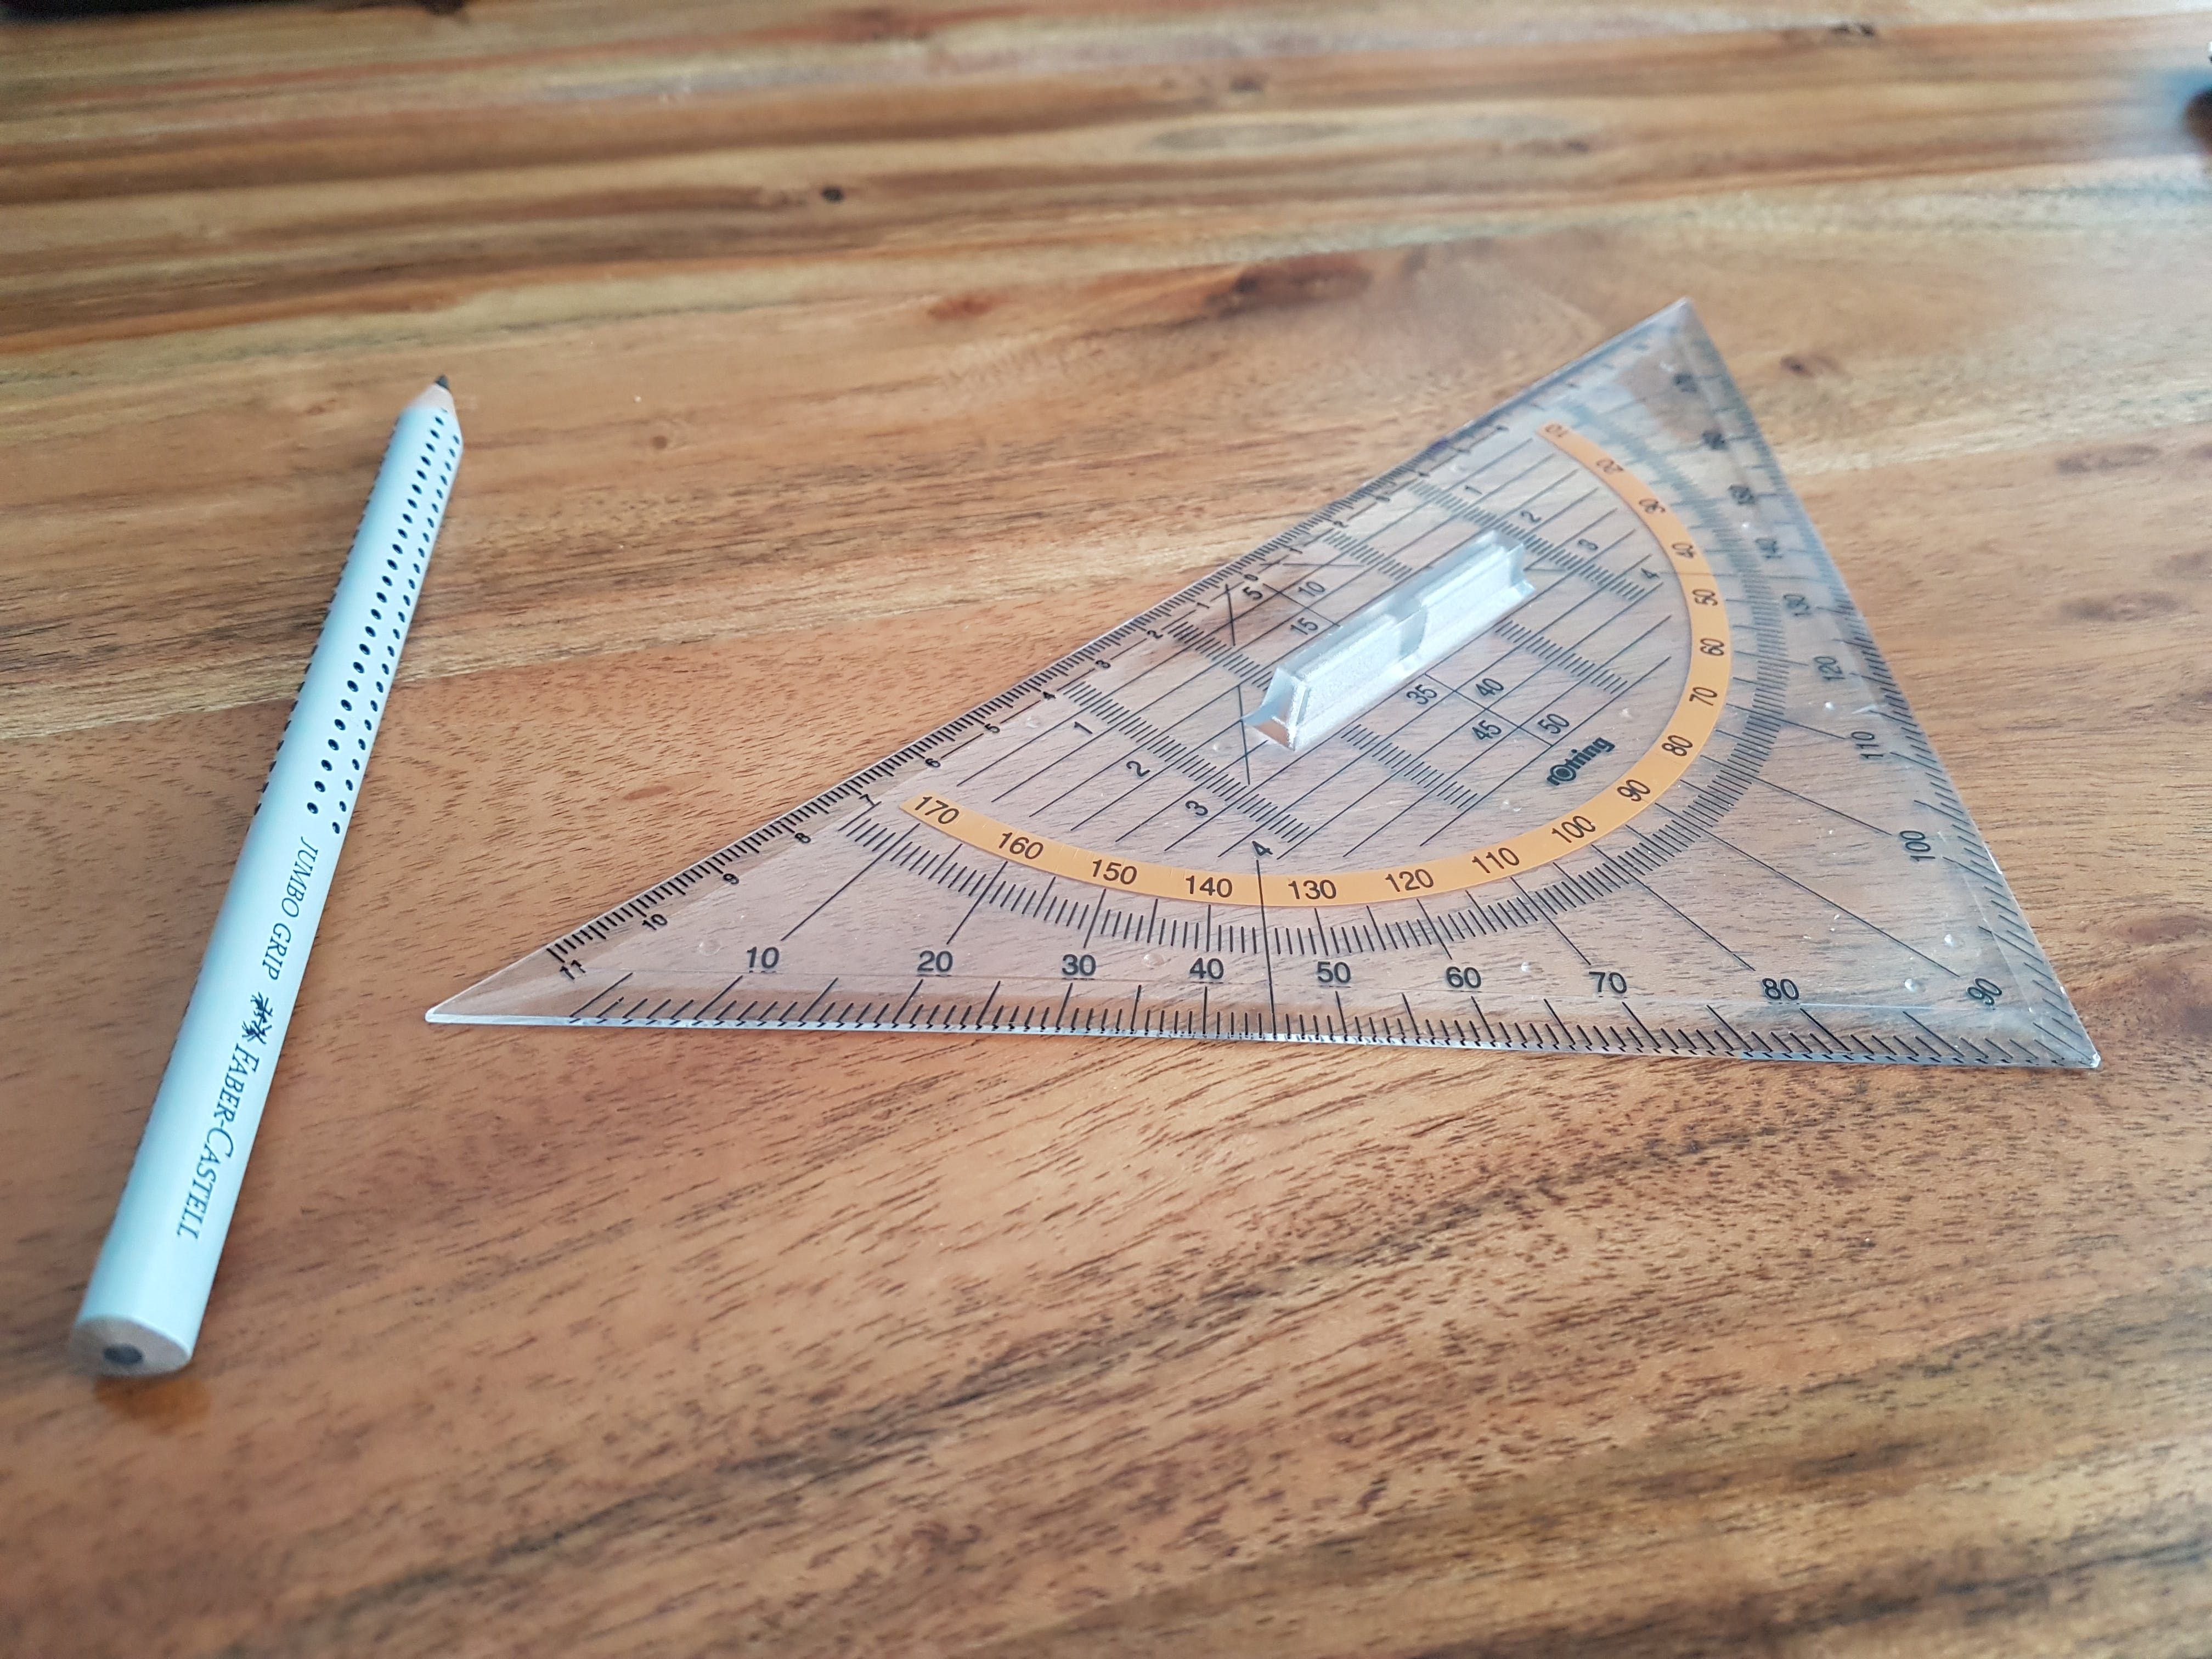 Gray Pencil and Triangular Ruler on Brown Wooden Surface